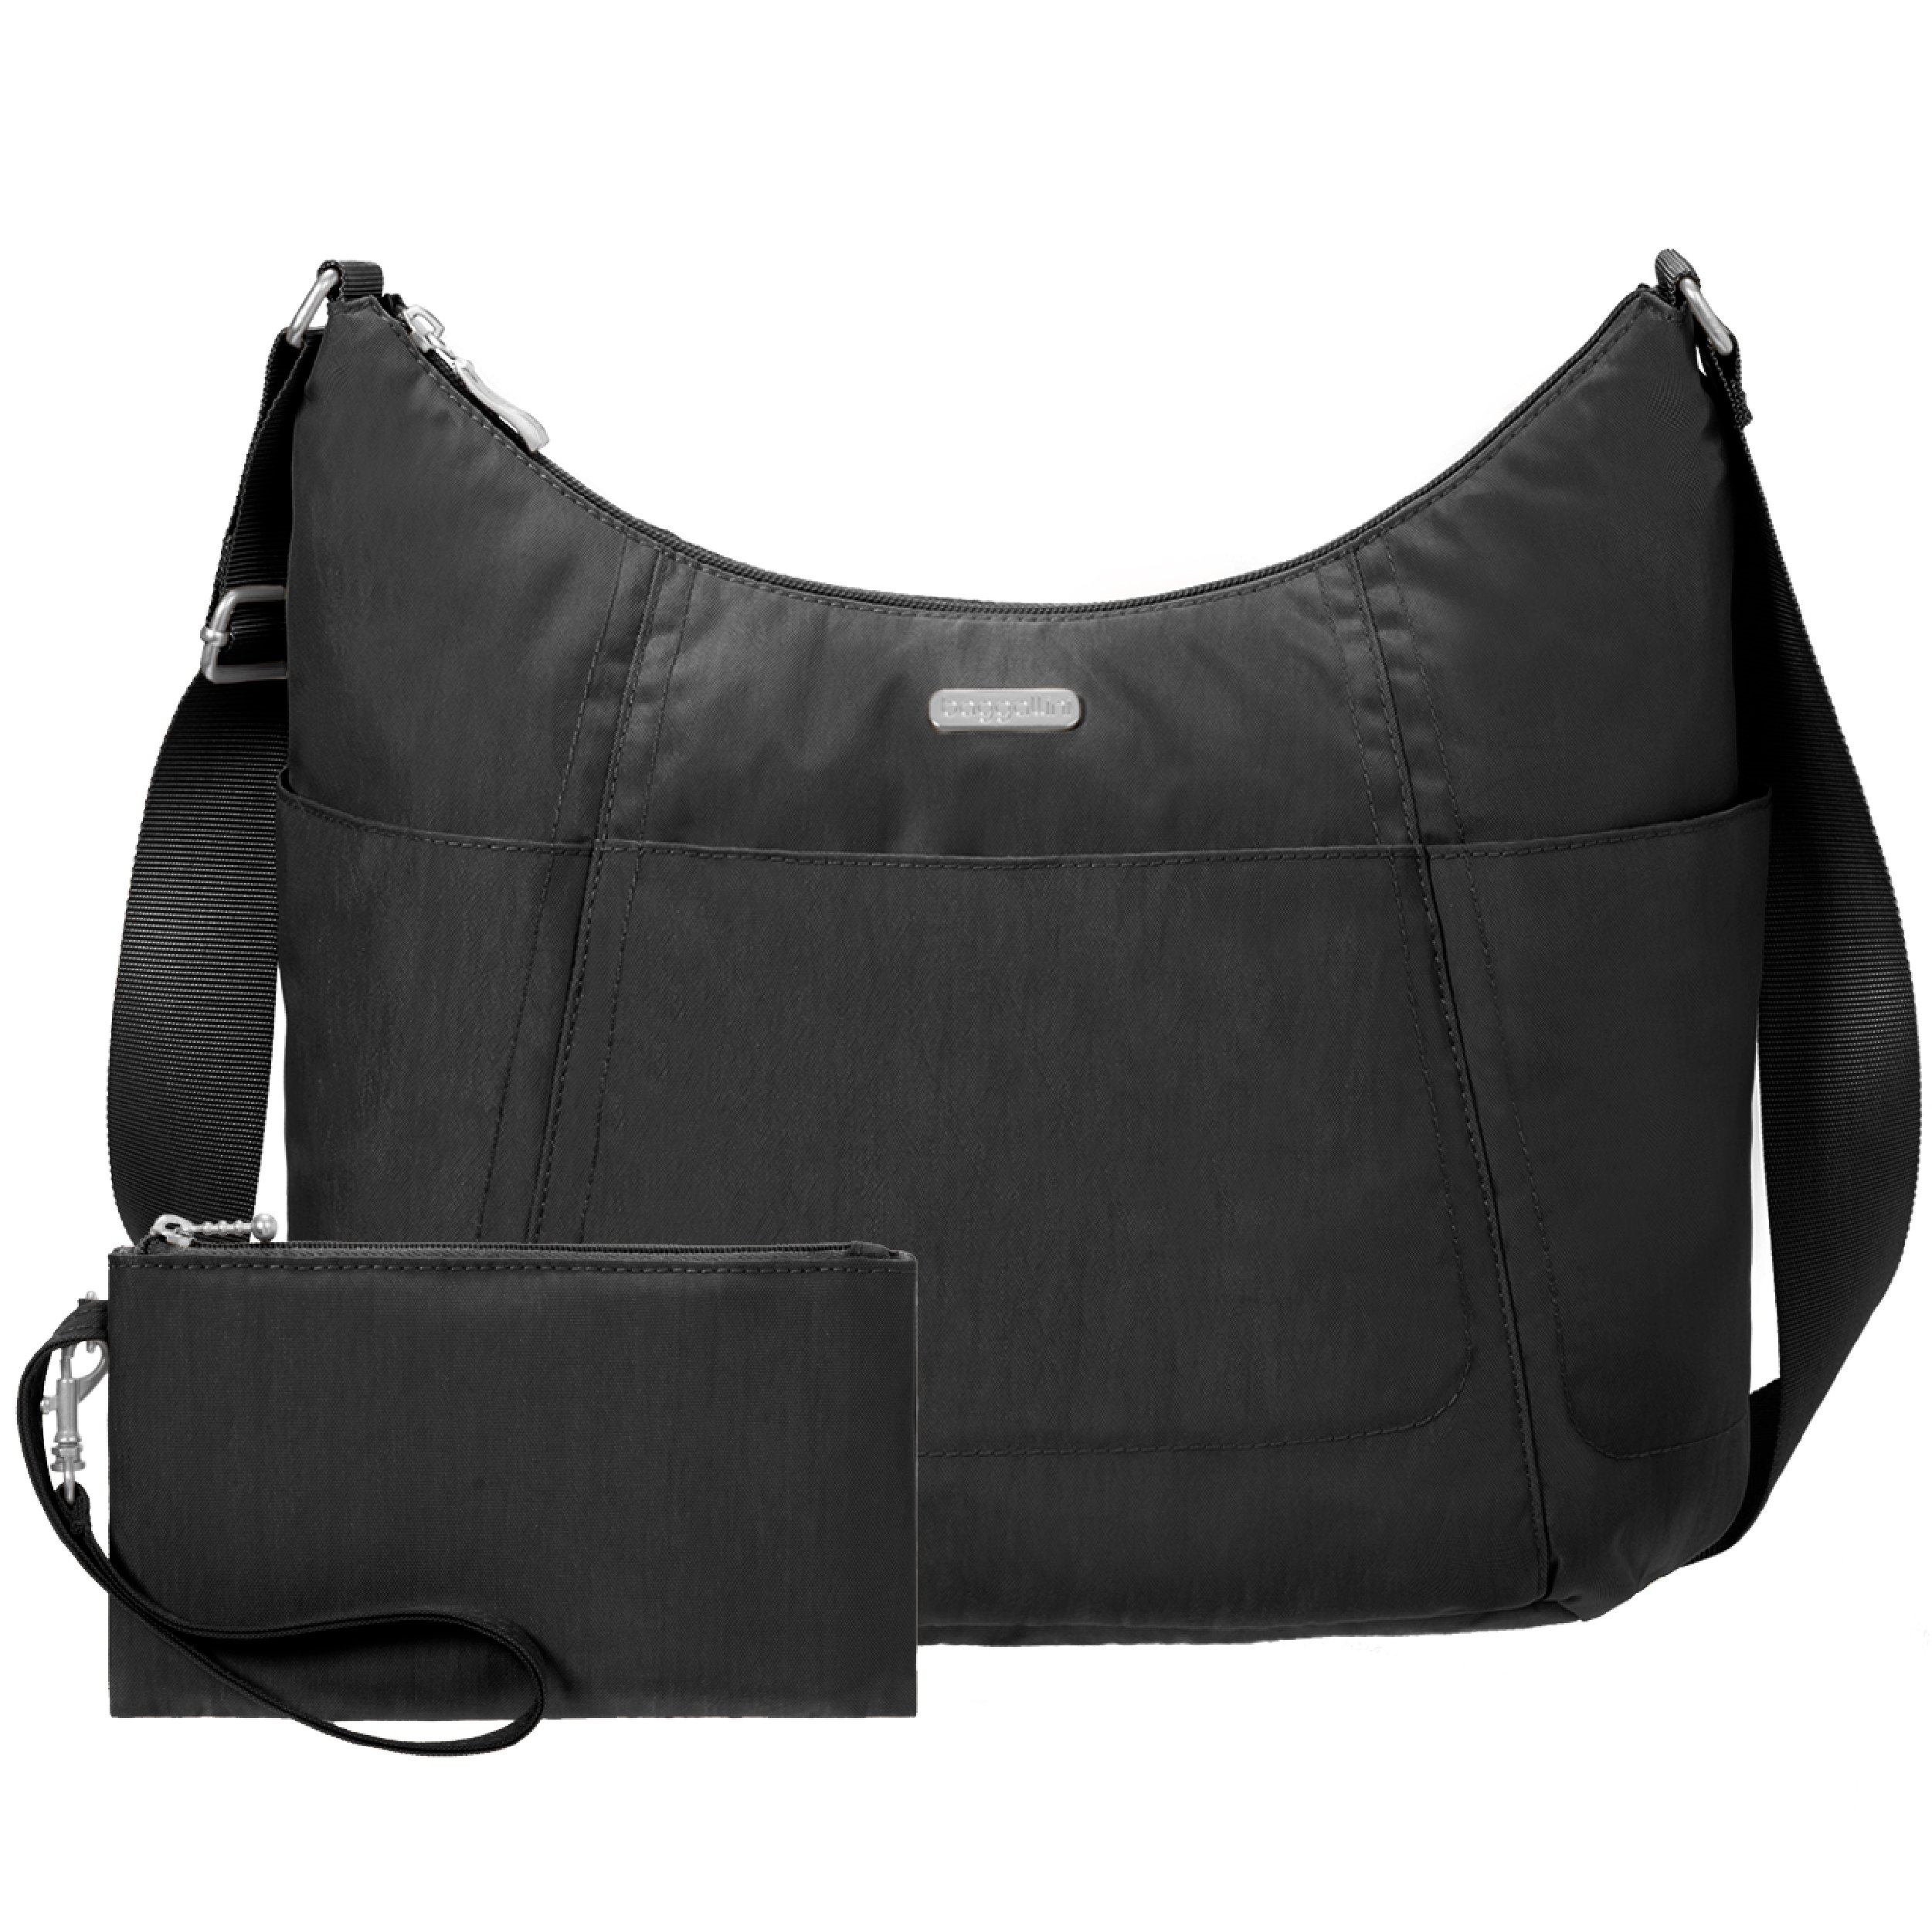 Baggallini Hobo Travel Tote, Black, One Size by Baggallini (Image #5)